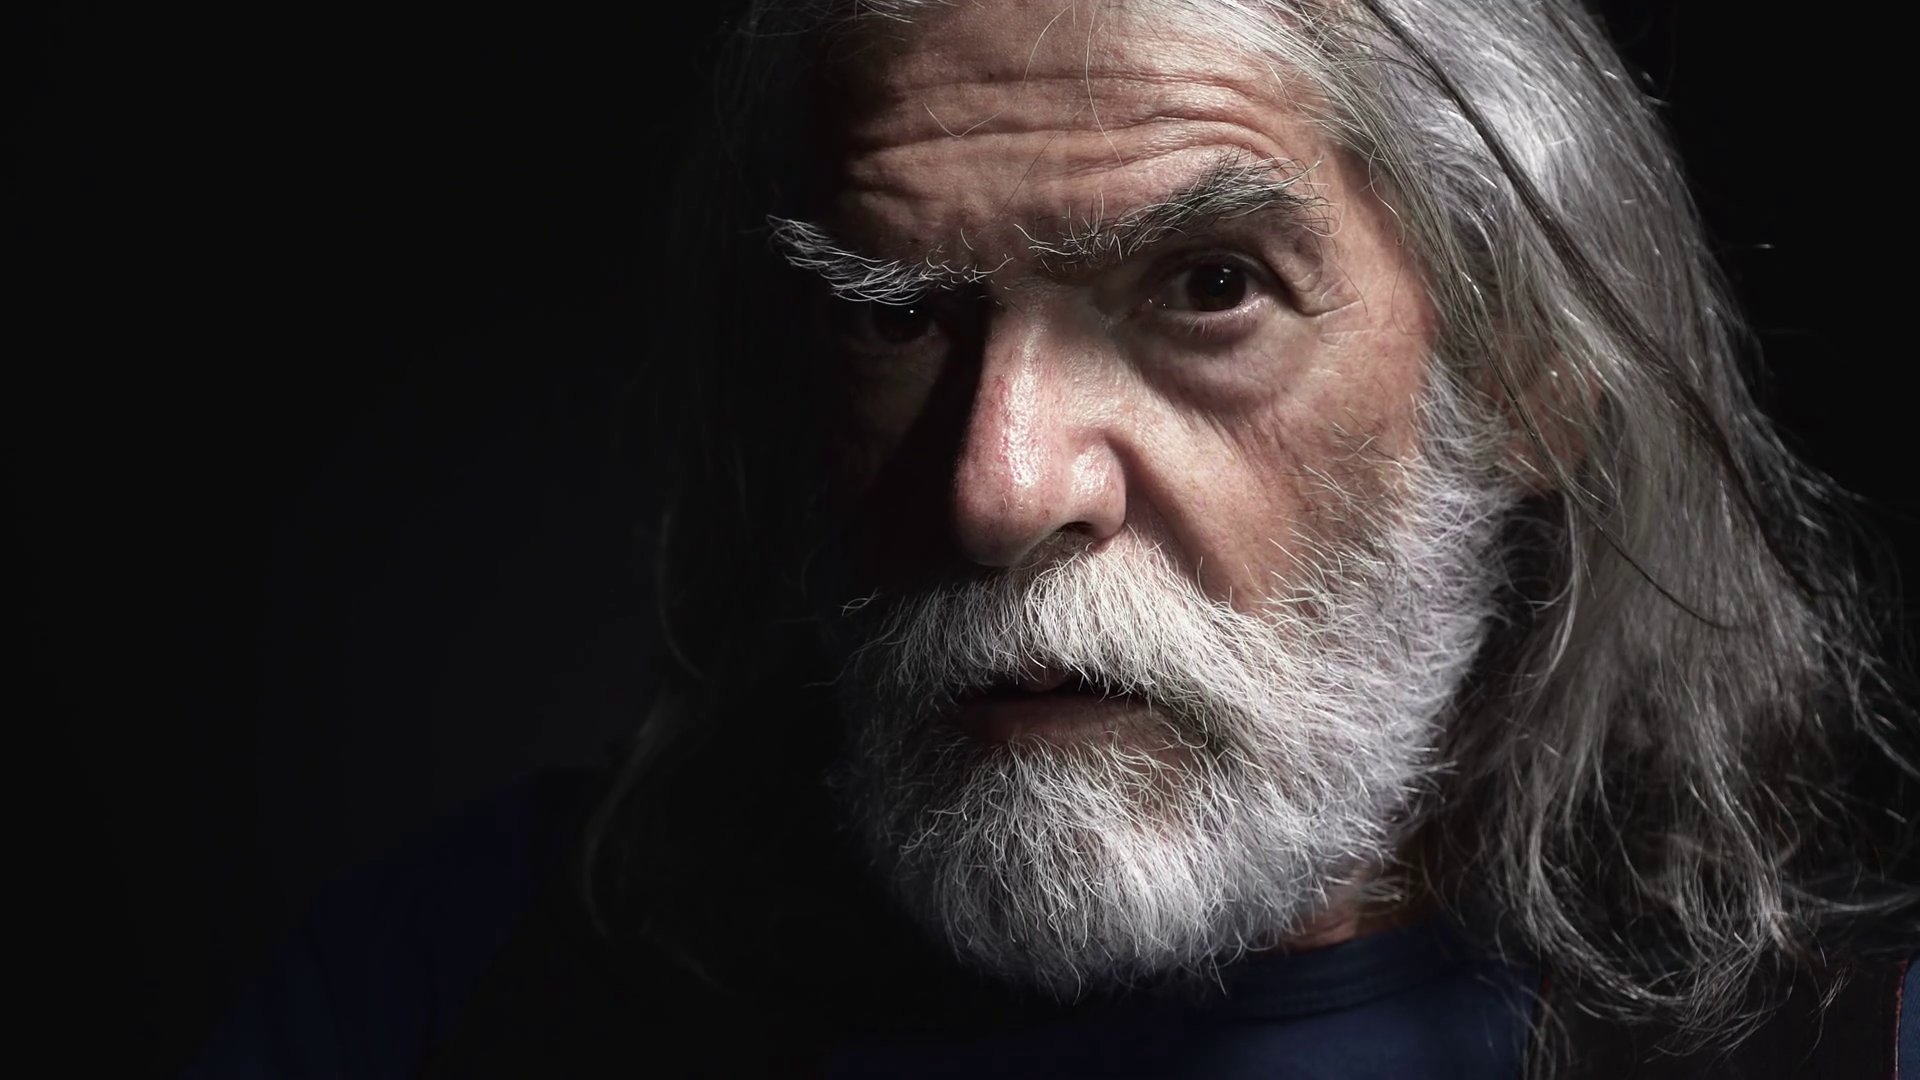 Free photo: Old man - Elder, Elderly, Face - Free Download ... An Old Man Face With Beards Images